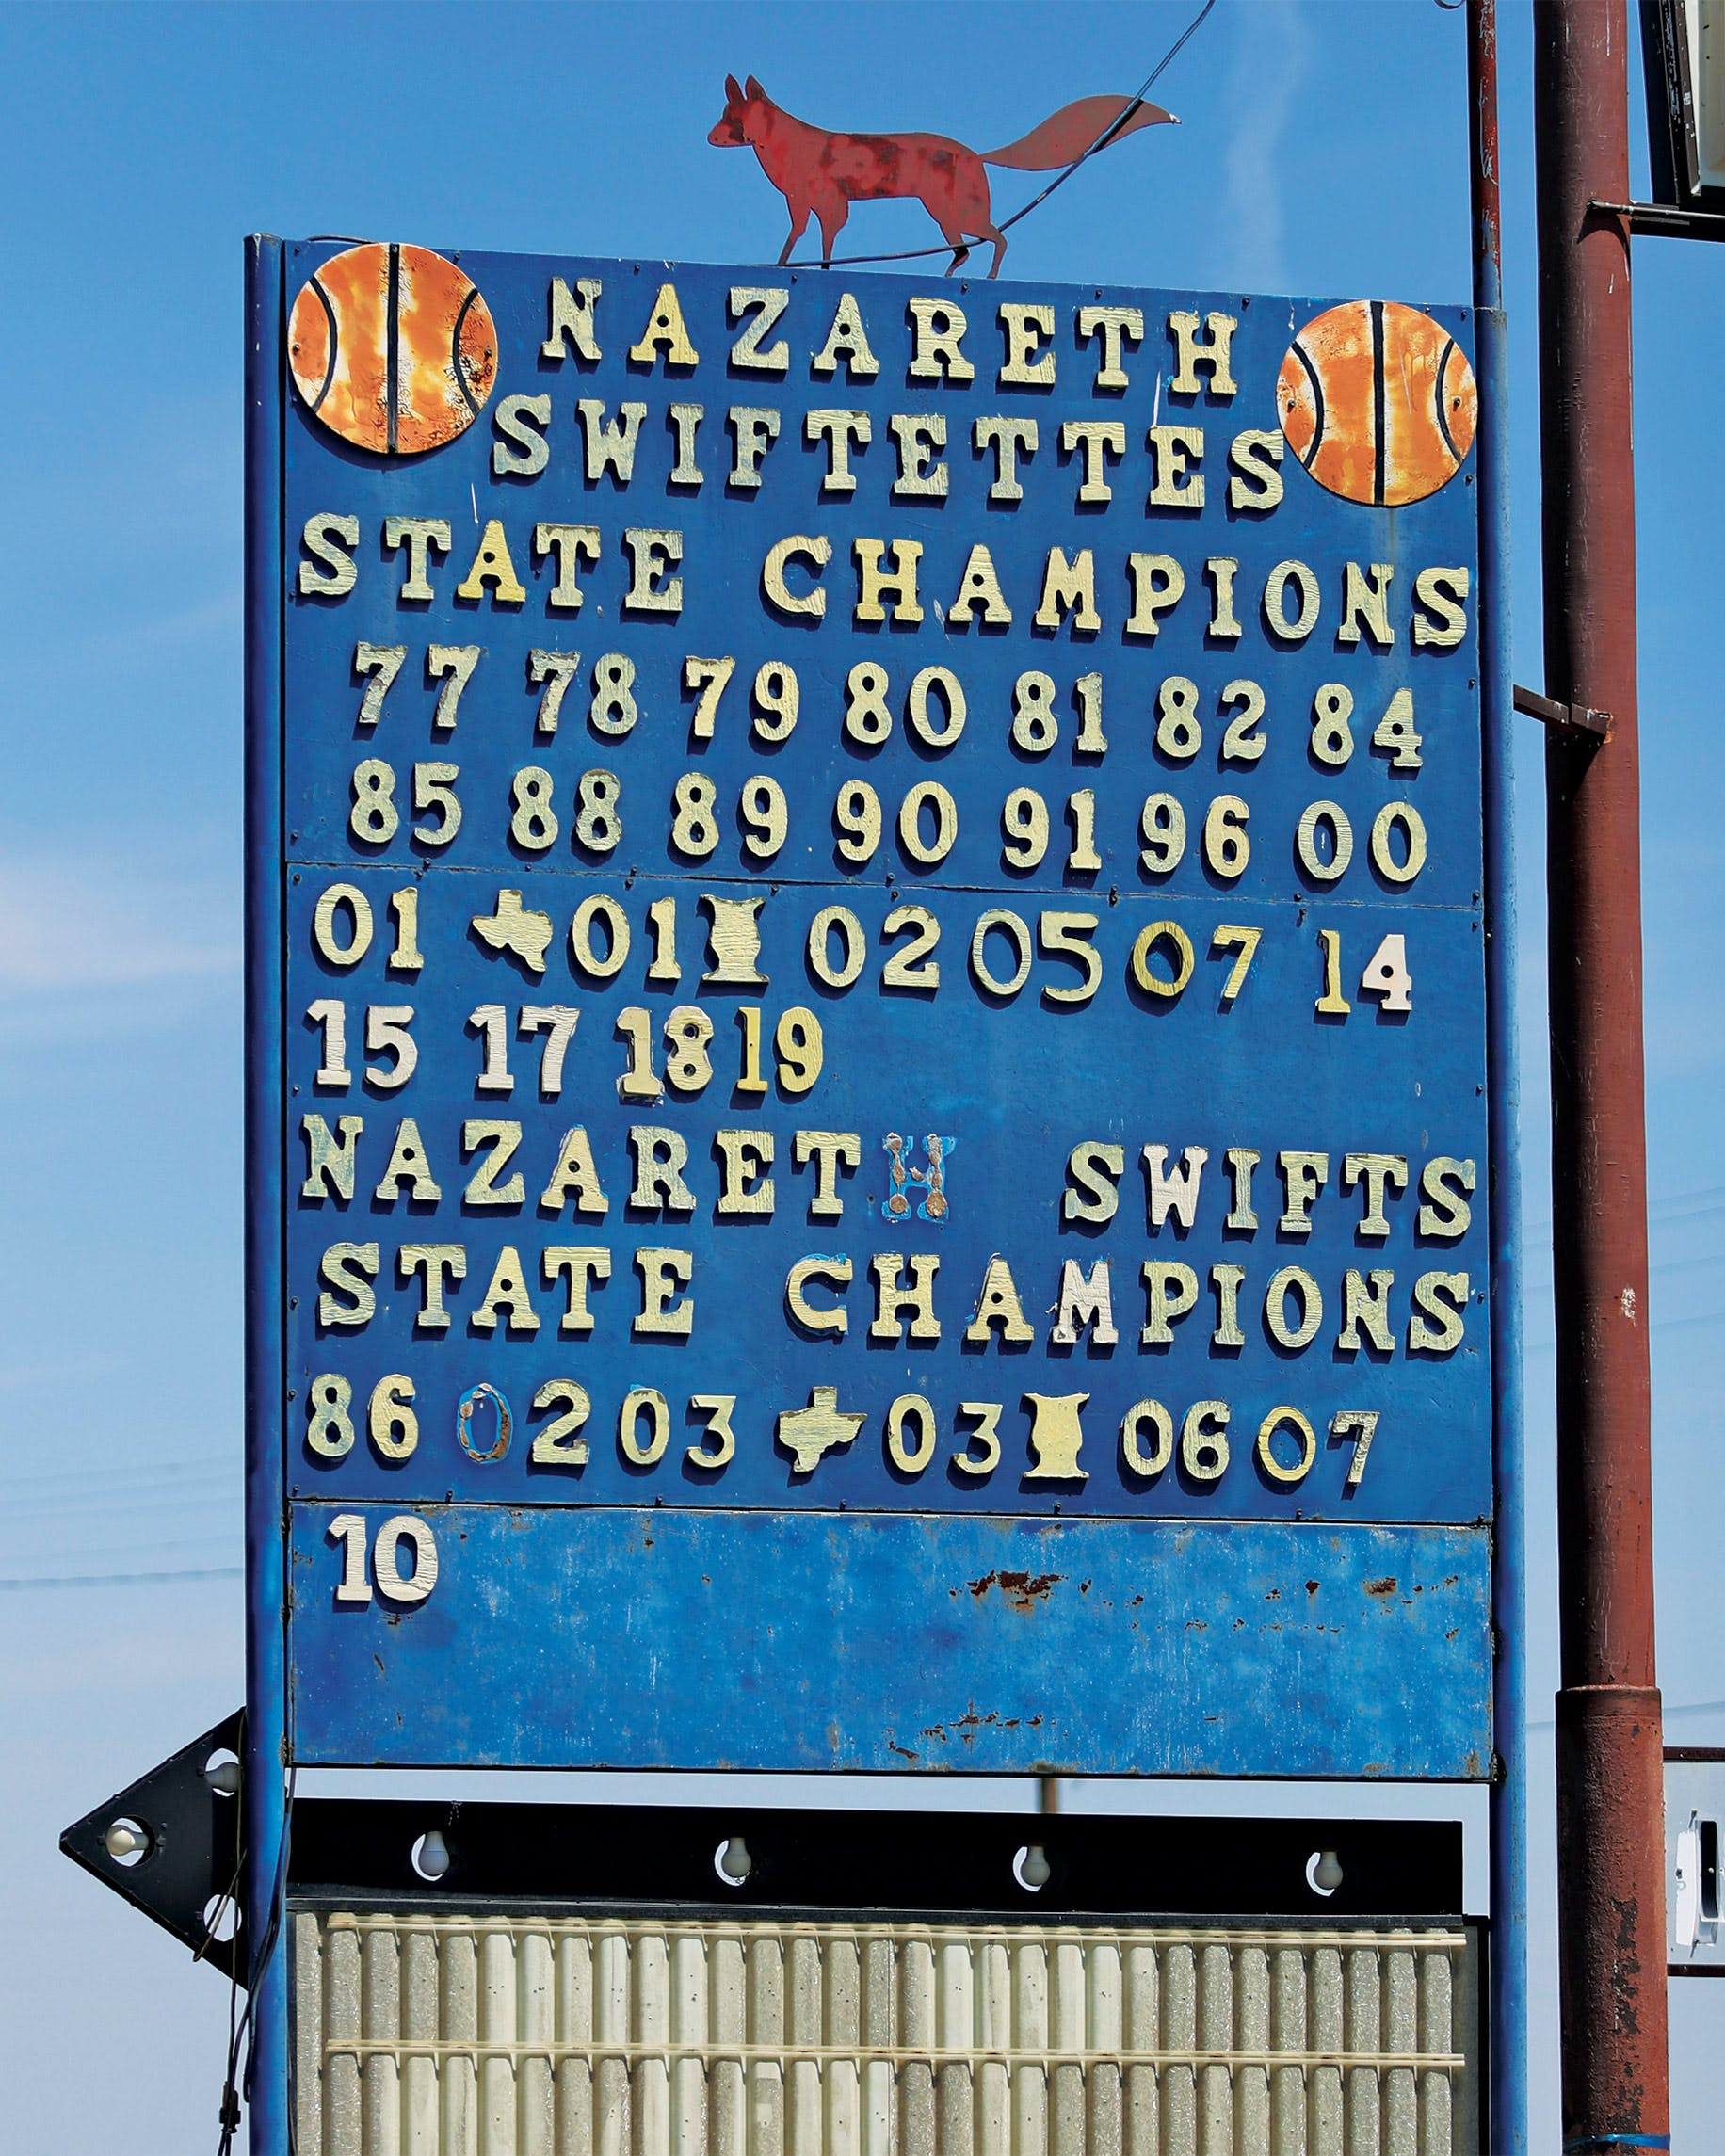 A sign in downtown Nazareth, touting the Swiftettes' and Swifts' state championships.